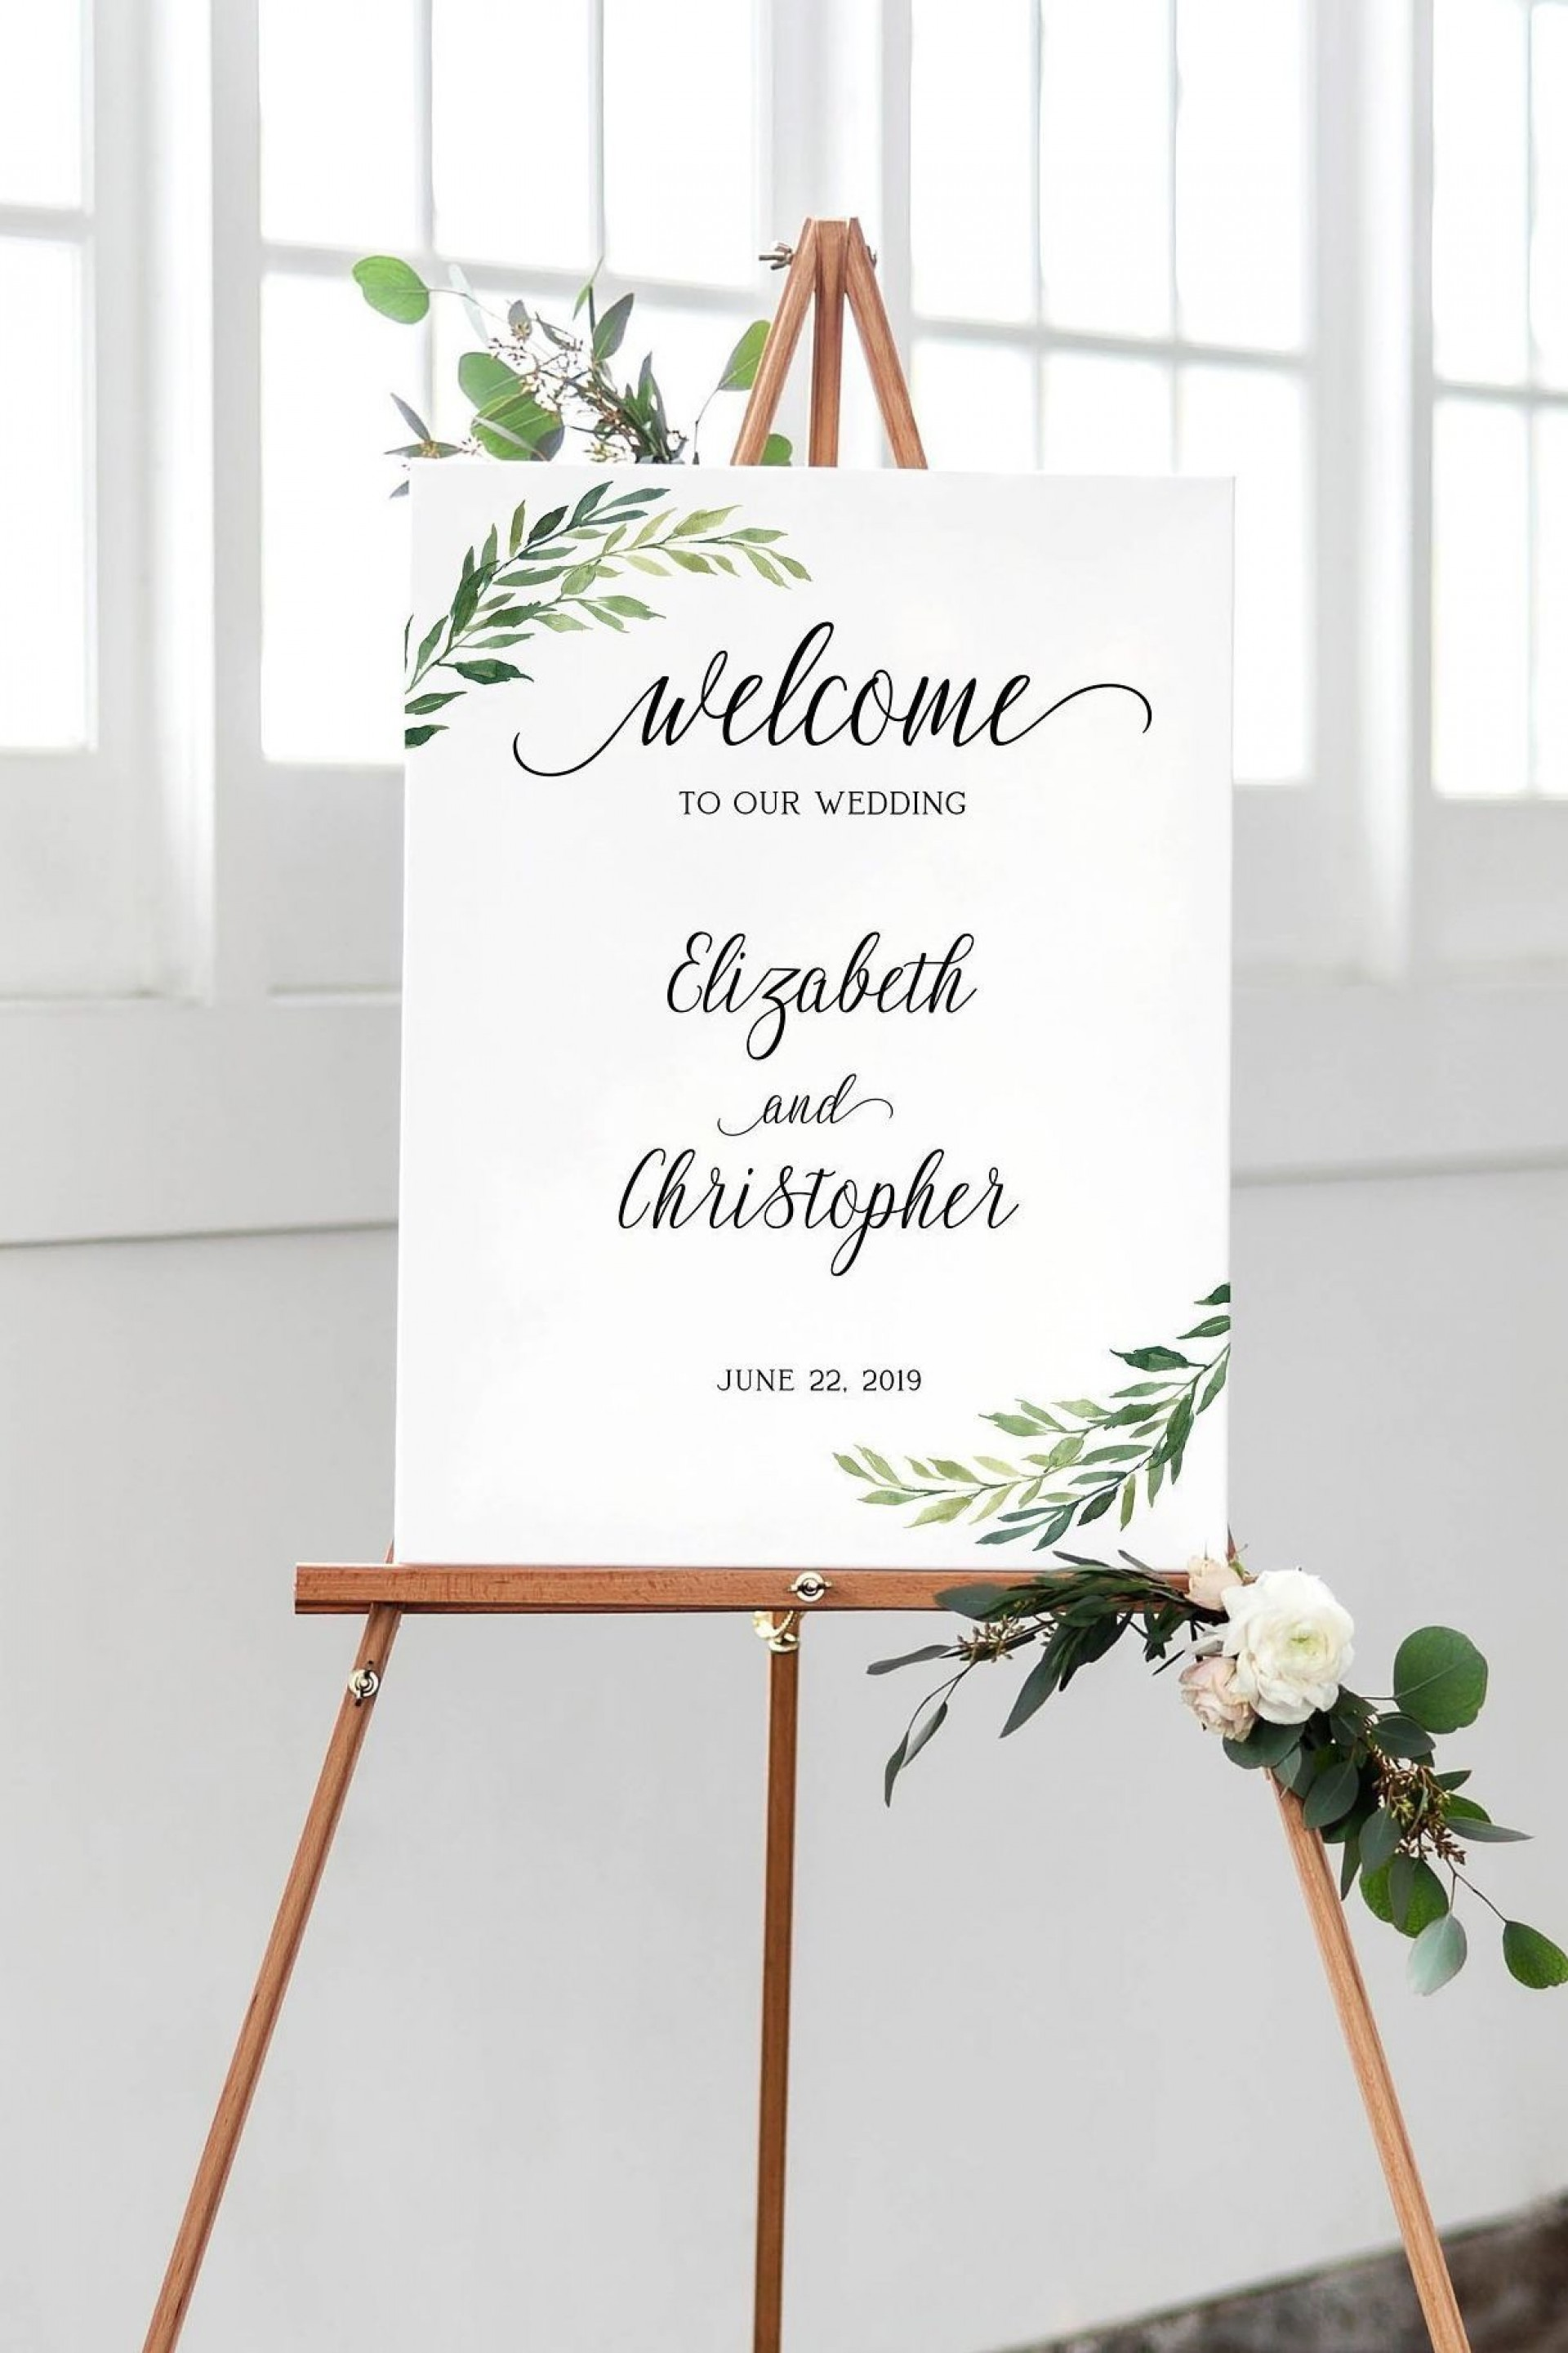 008 Fascinating Wedding Welcome Sign Template Free Image 1920